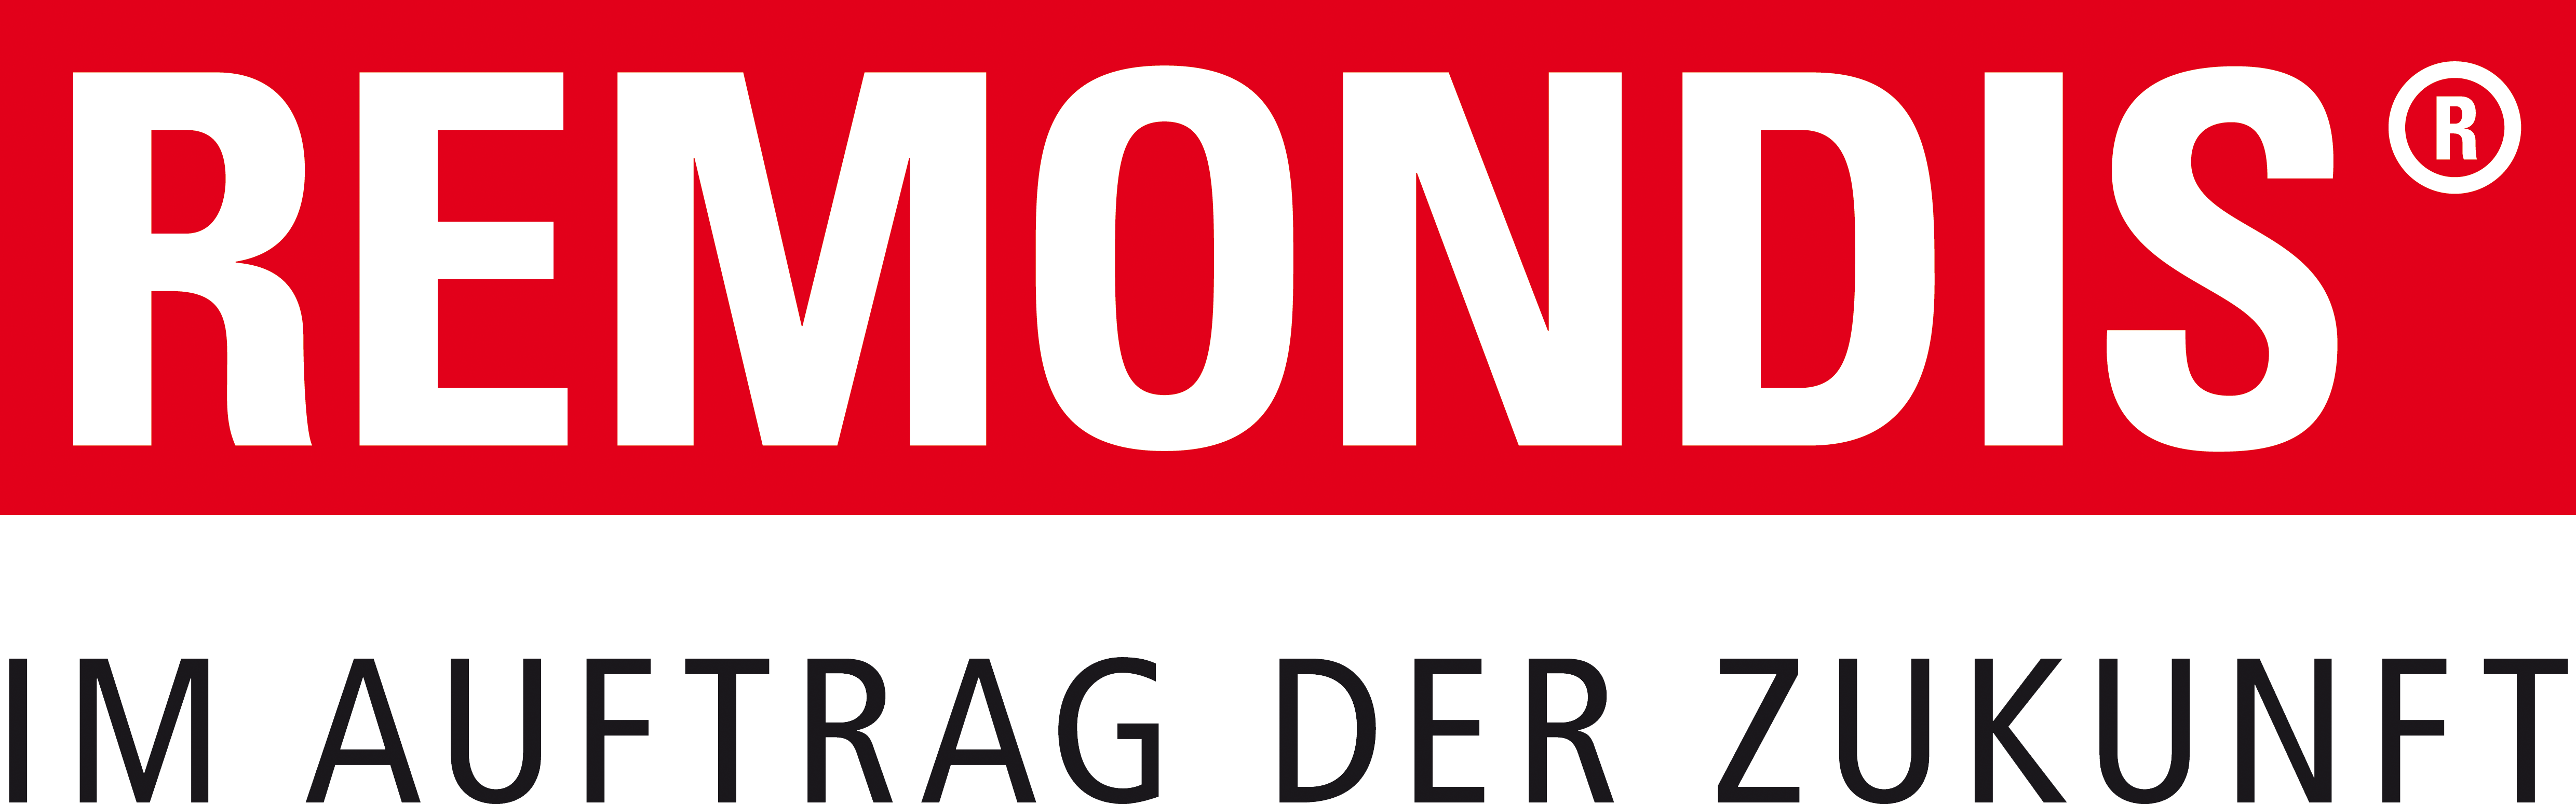 REMONDIS Assets & Services GmbH & Co. KG